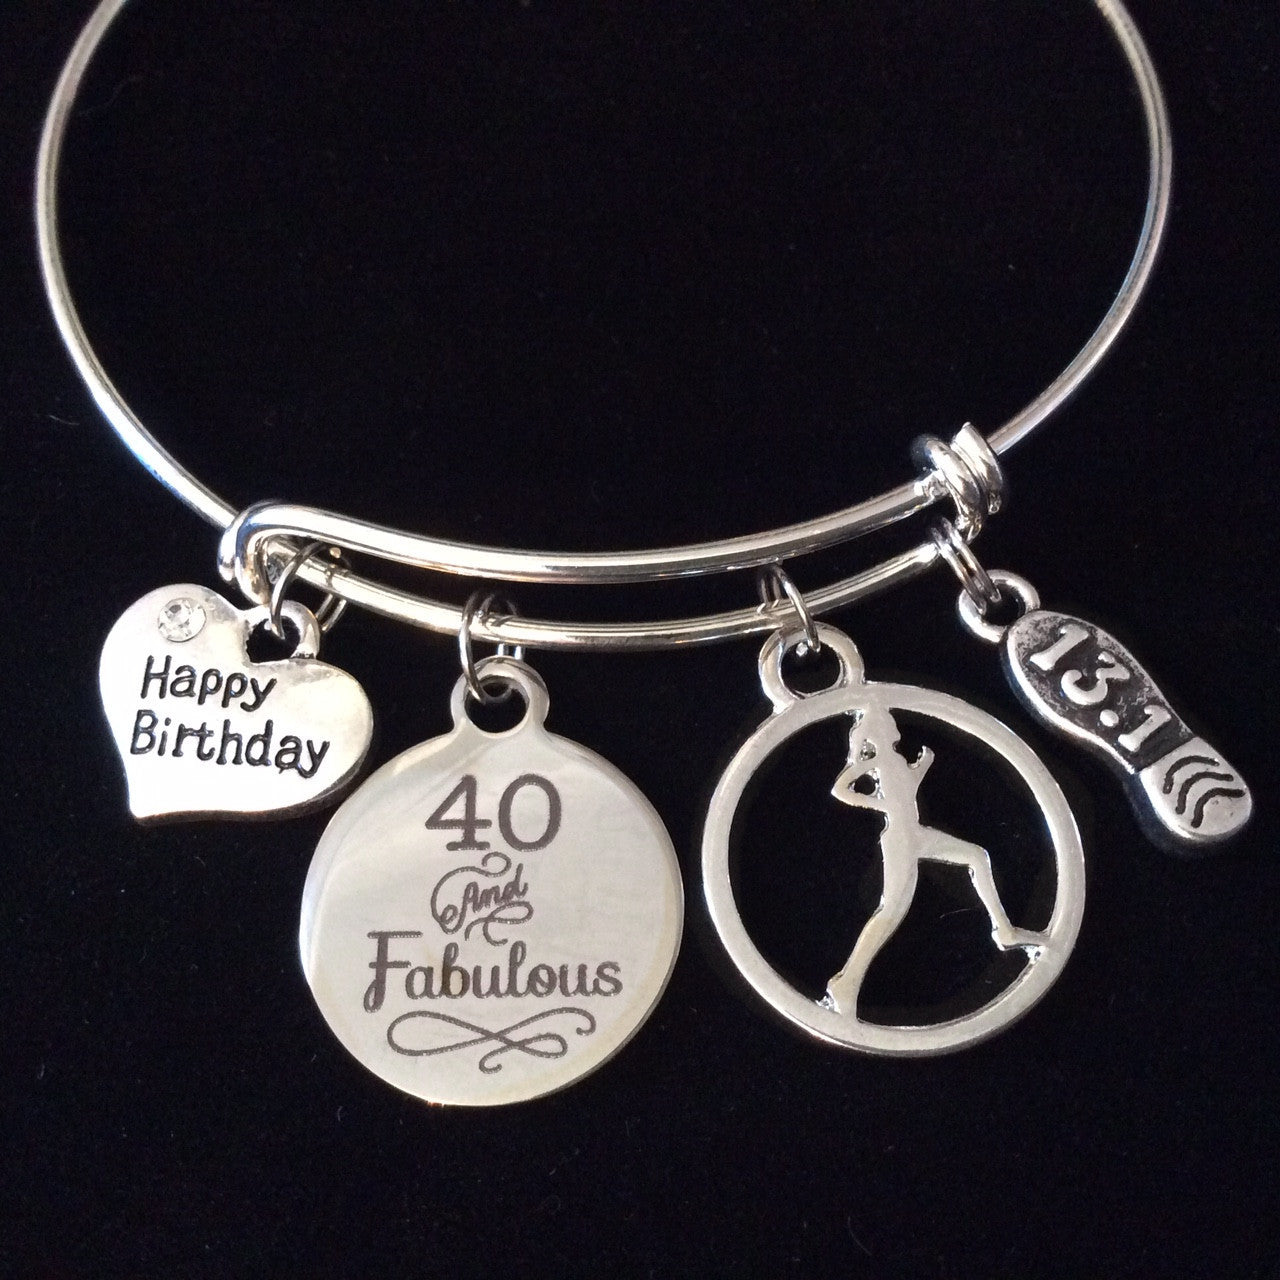 Happy Birthday Forty And Fabulous 131 Runner Expandable Silver Charm Bracelet Adjustable Wire Bangle Trendy Race